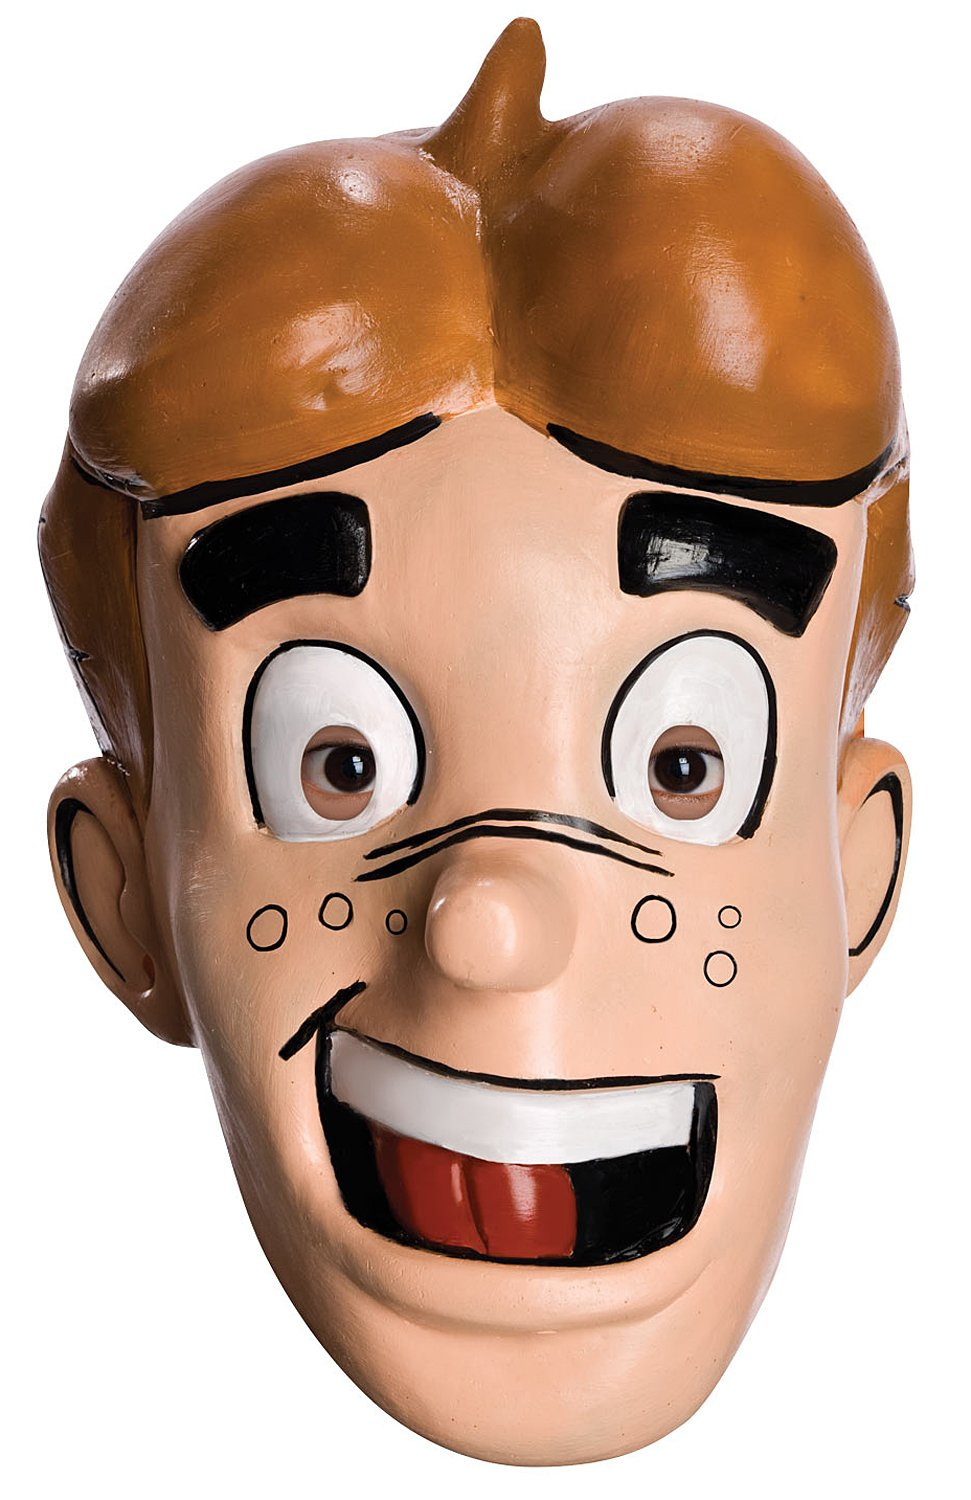 Archie Comics - Archie Overhead Latex Mask (Adult)